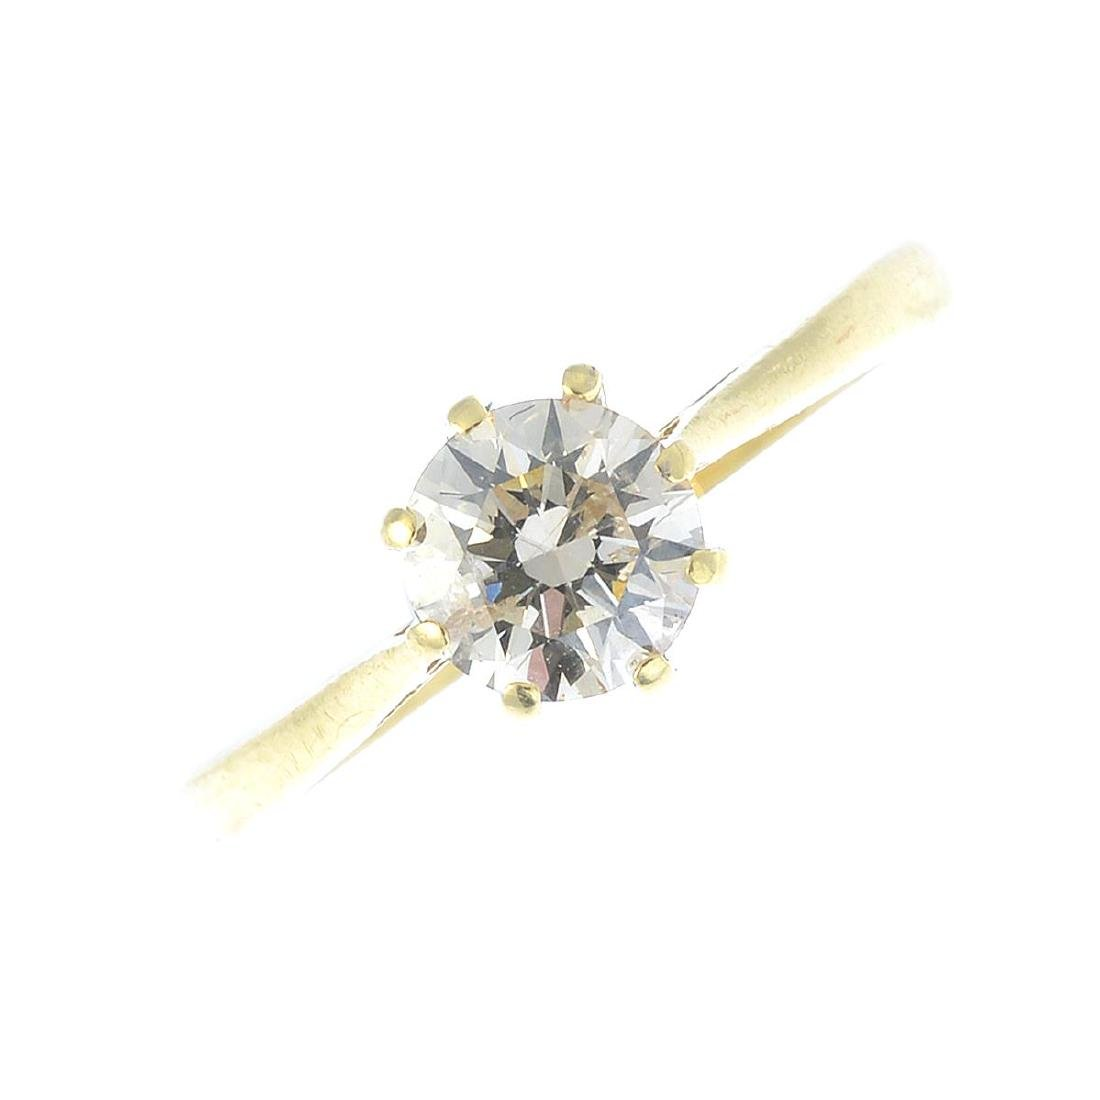 An 18ct gold diamond single-stone ring. The